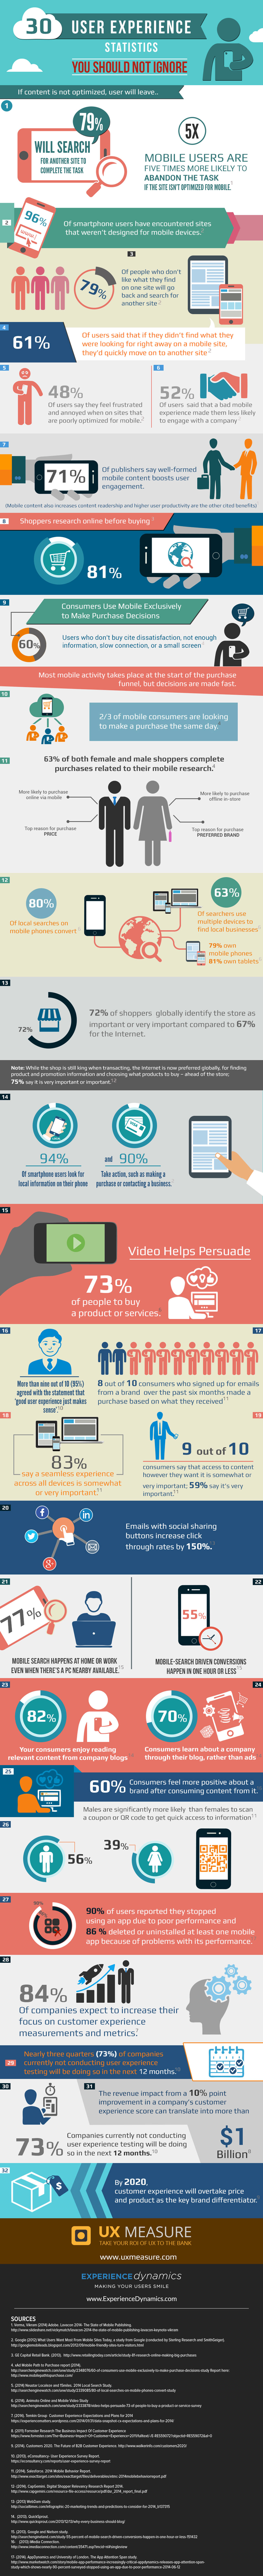 User Experience UX Statistics You Must See Infographic